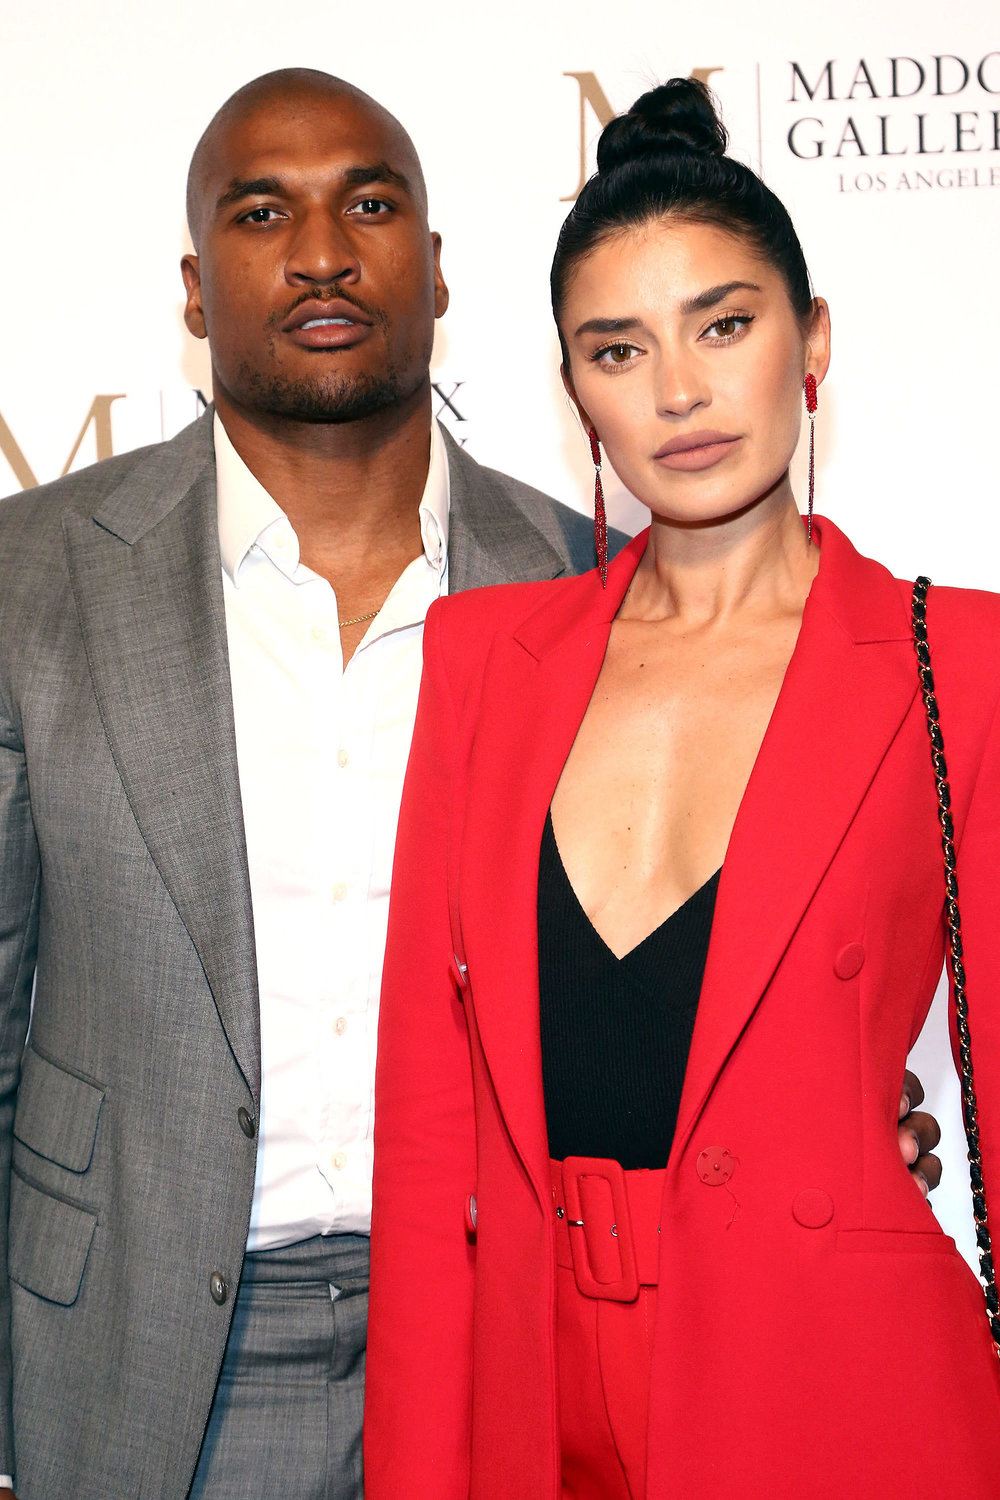 Larry  and  Nicole English  were picture perfect at  The VIP Opening of Maddox Gallery LA  featuring   its inaugural exhibition ' Best of British', where guests enjoyed speciality cocktails provided by  Guillotine Vodka  on   Thursday, October 11th in West Hollywood, CA. (Photo by Tommaso Bodi/Getty Images for Maddox Gallery)